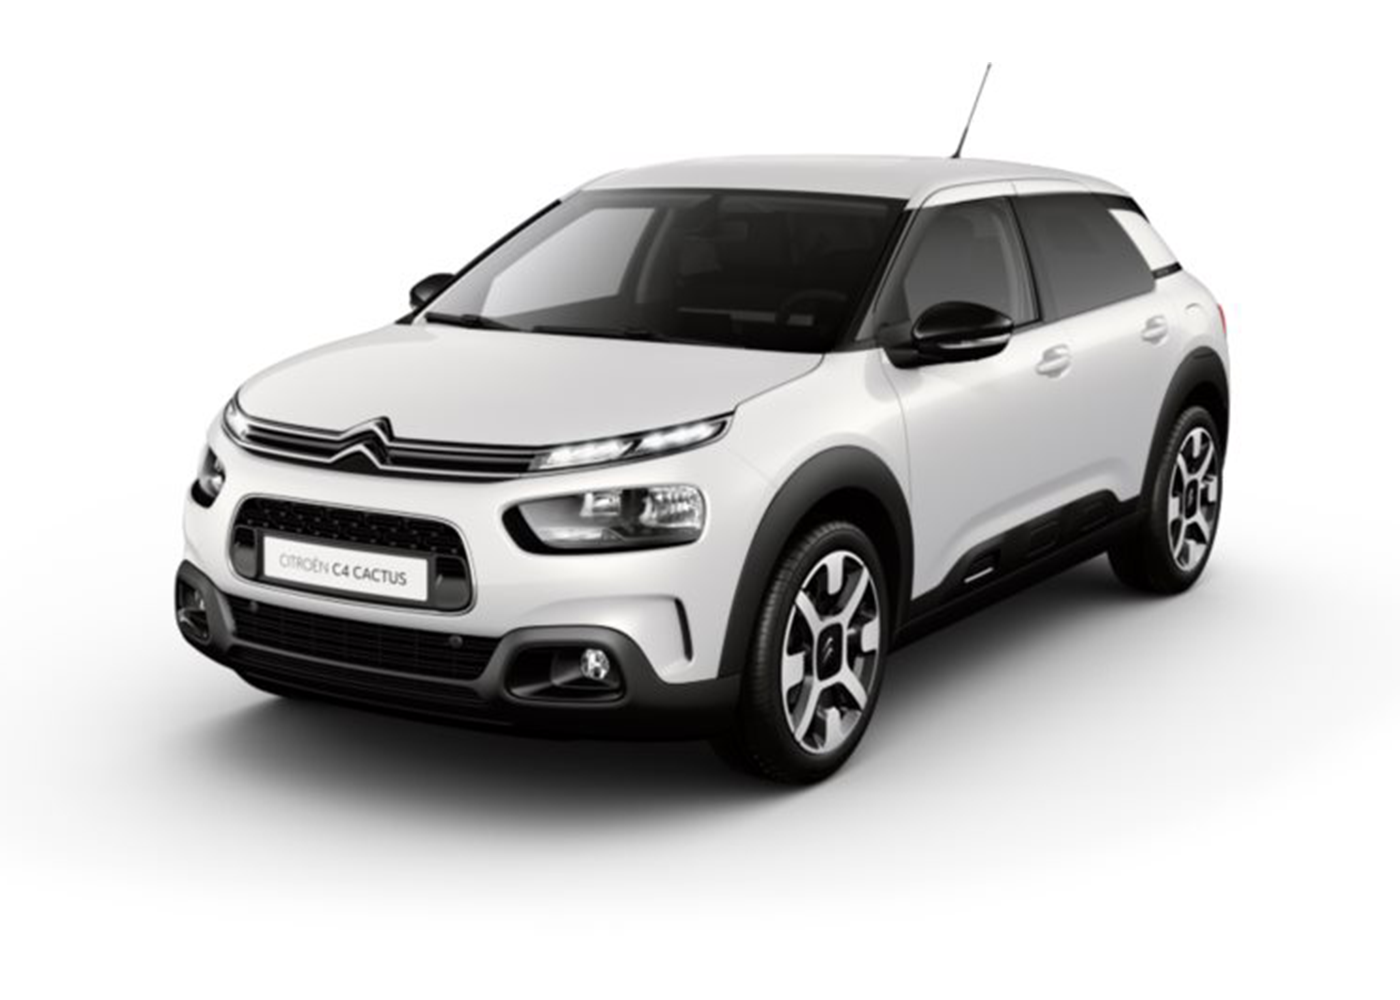 citroen c4 cactus puretech 110 s s shine pearl white km0 a. Black Bedroom Furniture Sets. Home Design Ideas